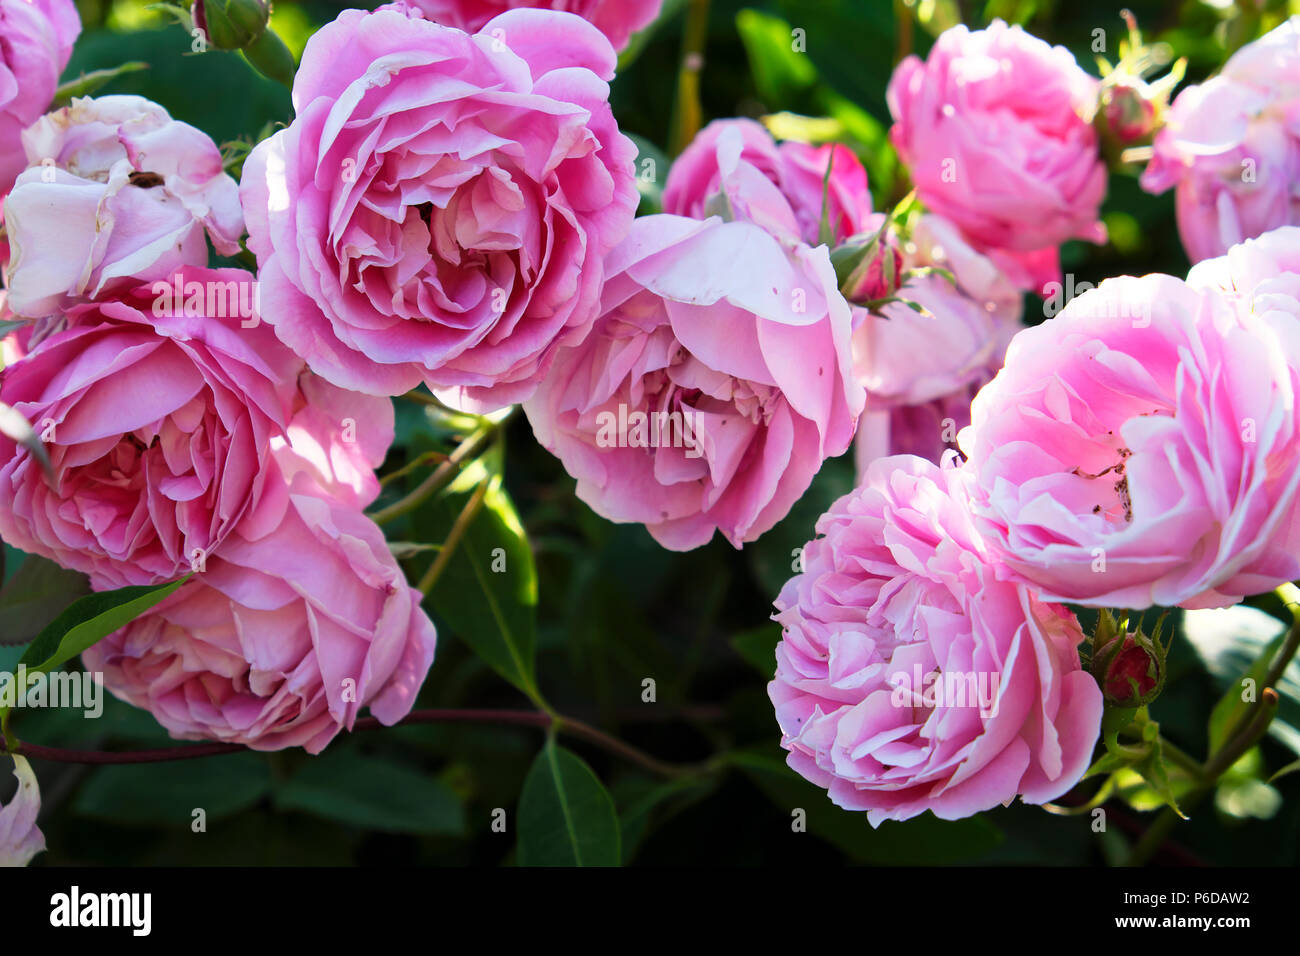 Pink roses in bloom in a rural country garden in a West Wales garden Camarthenshire Dyfed Wales, UK  KATHY DEWITT - Stock Image